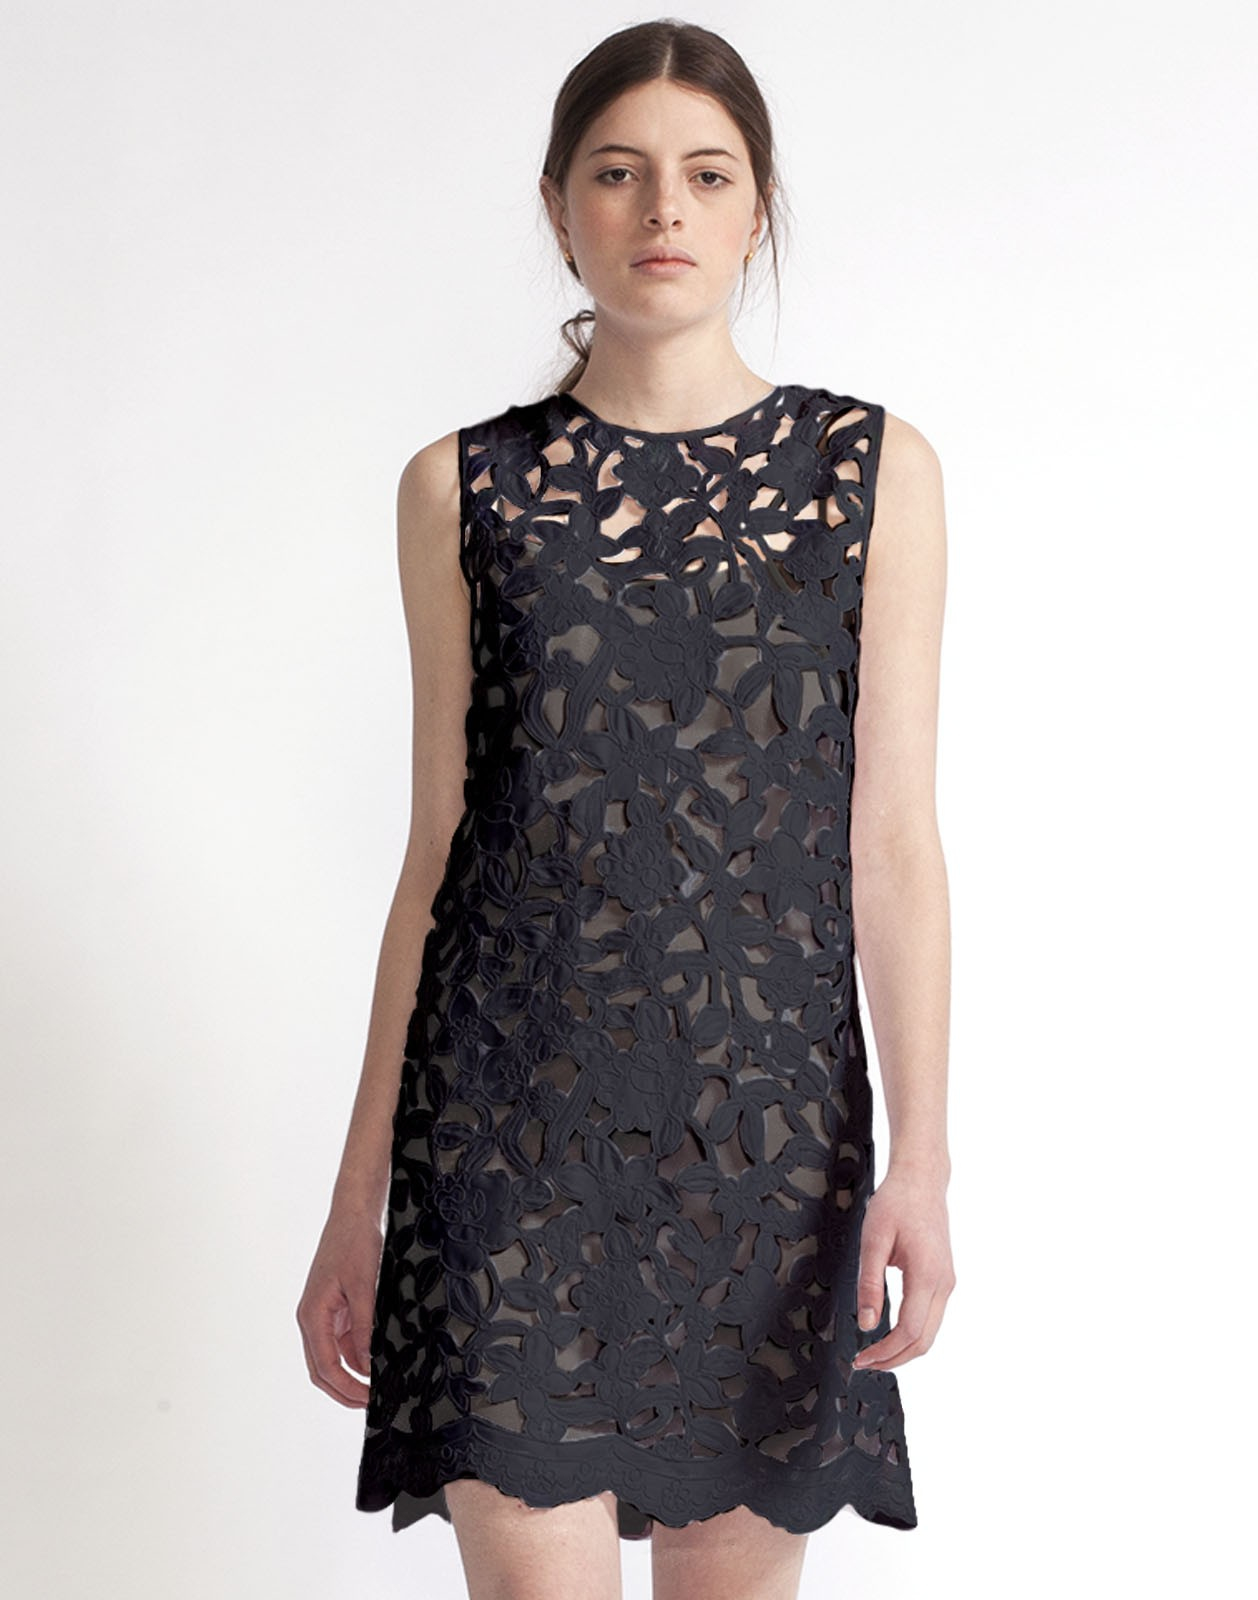 Cynthia Rowley Floral Lace A Line Dress In Black Lyst